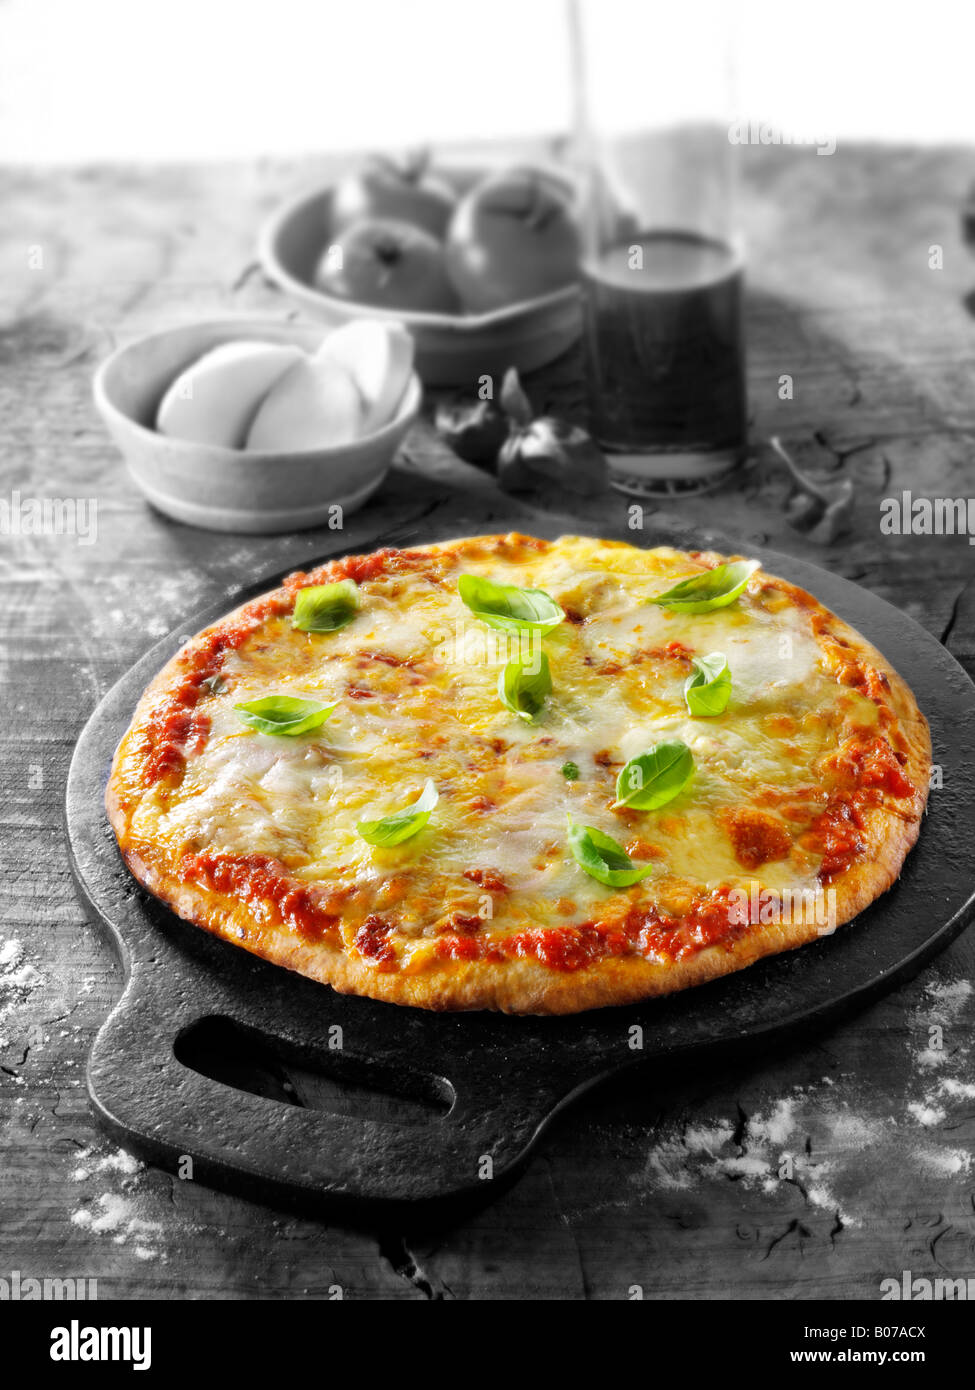 Pizza margarita aux trois fromages Photo Stock